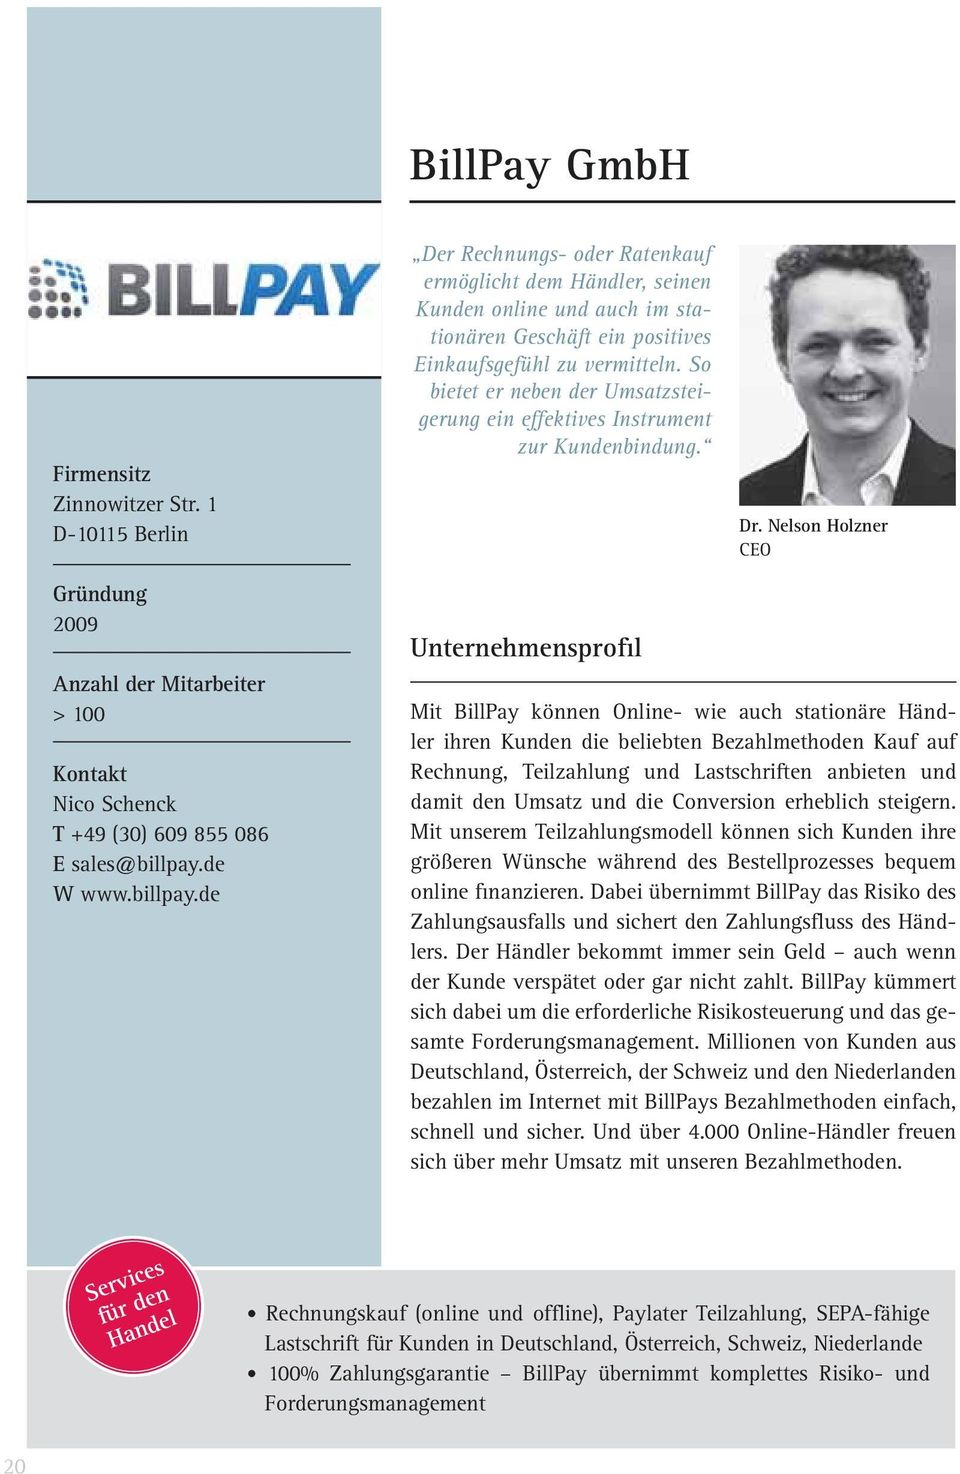 de W www.billpay.